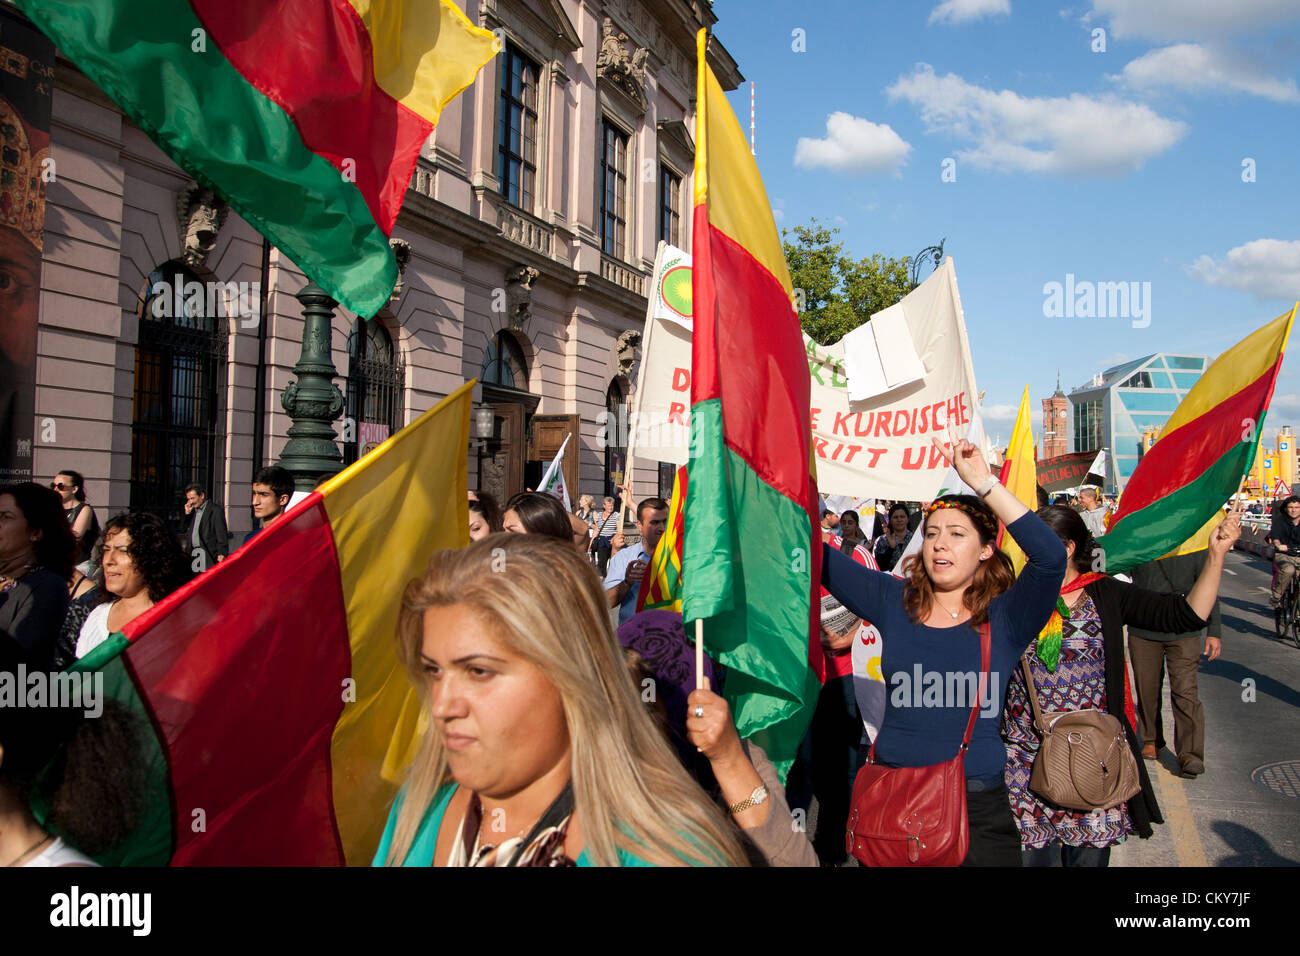 Saturday 1st Sept 2012. Demonstration to support Kurds in Syria. Berlin, Germany. - Stock Image